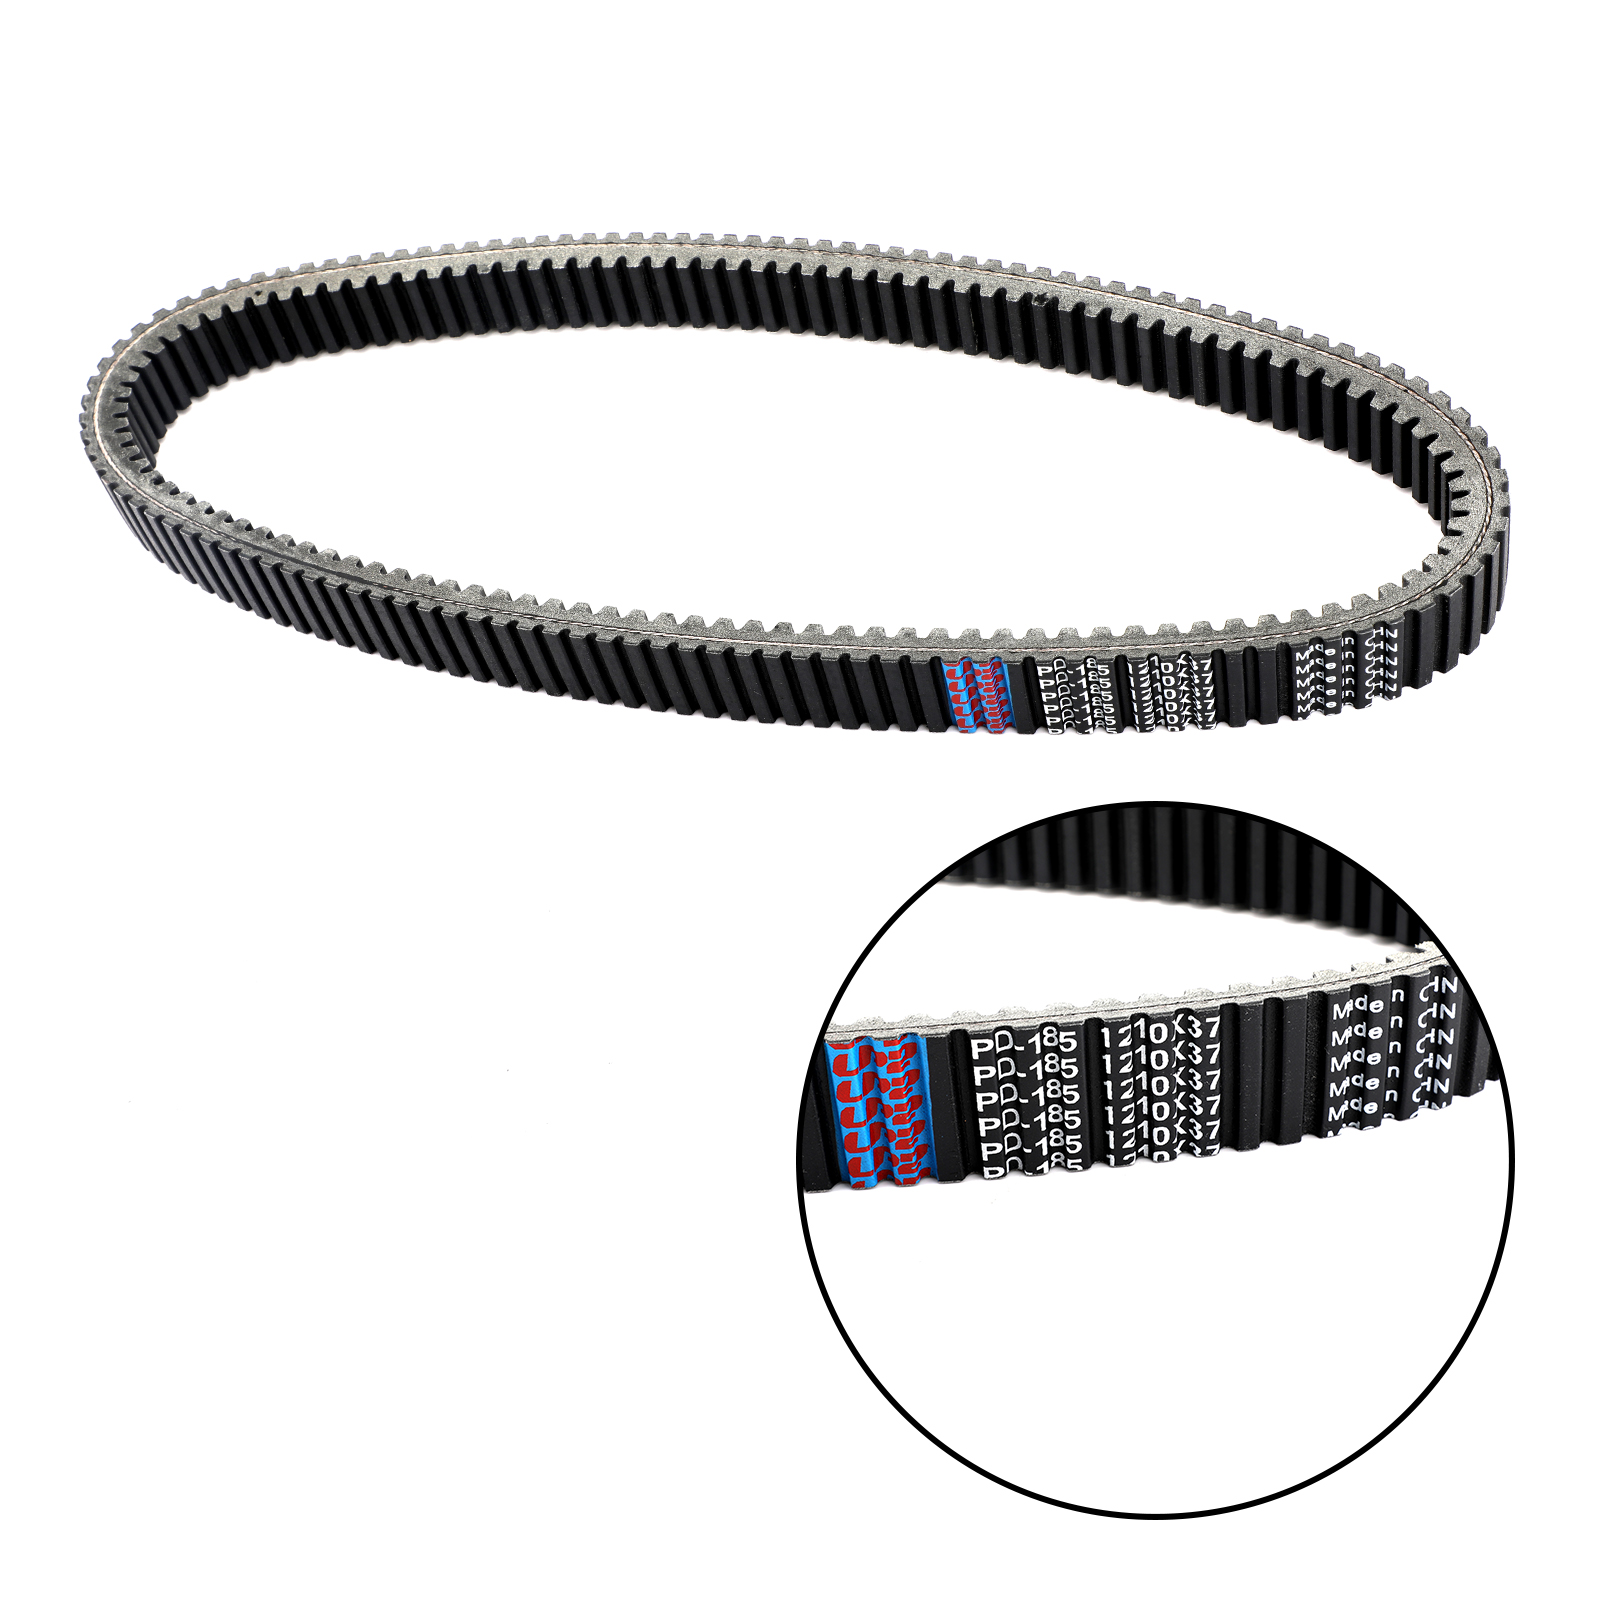 Areyourshop Motorcycle Drive Belt 1210Cx37W For Polaris Indy 440 500 600 700 800 XC XCR 99-03 3211075 motorcycle beltAreyourshop Motorcycle Drive Belt 1210Cx37W For Polaris Indy 440 500 600 700 800 XC XCR 99-03 3211075 motorcycle belt